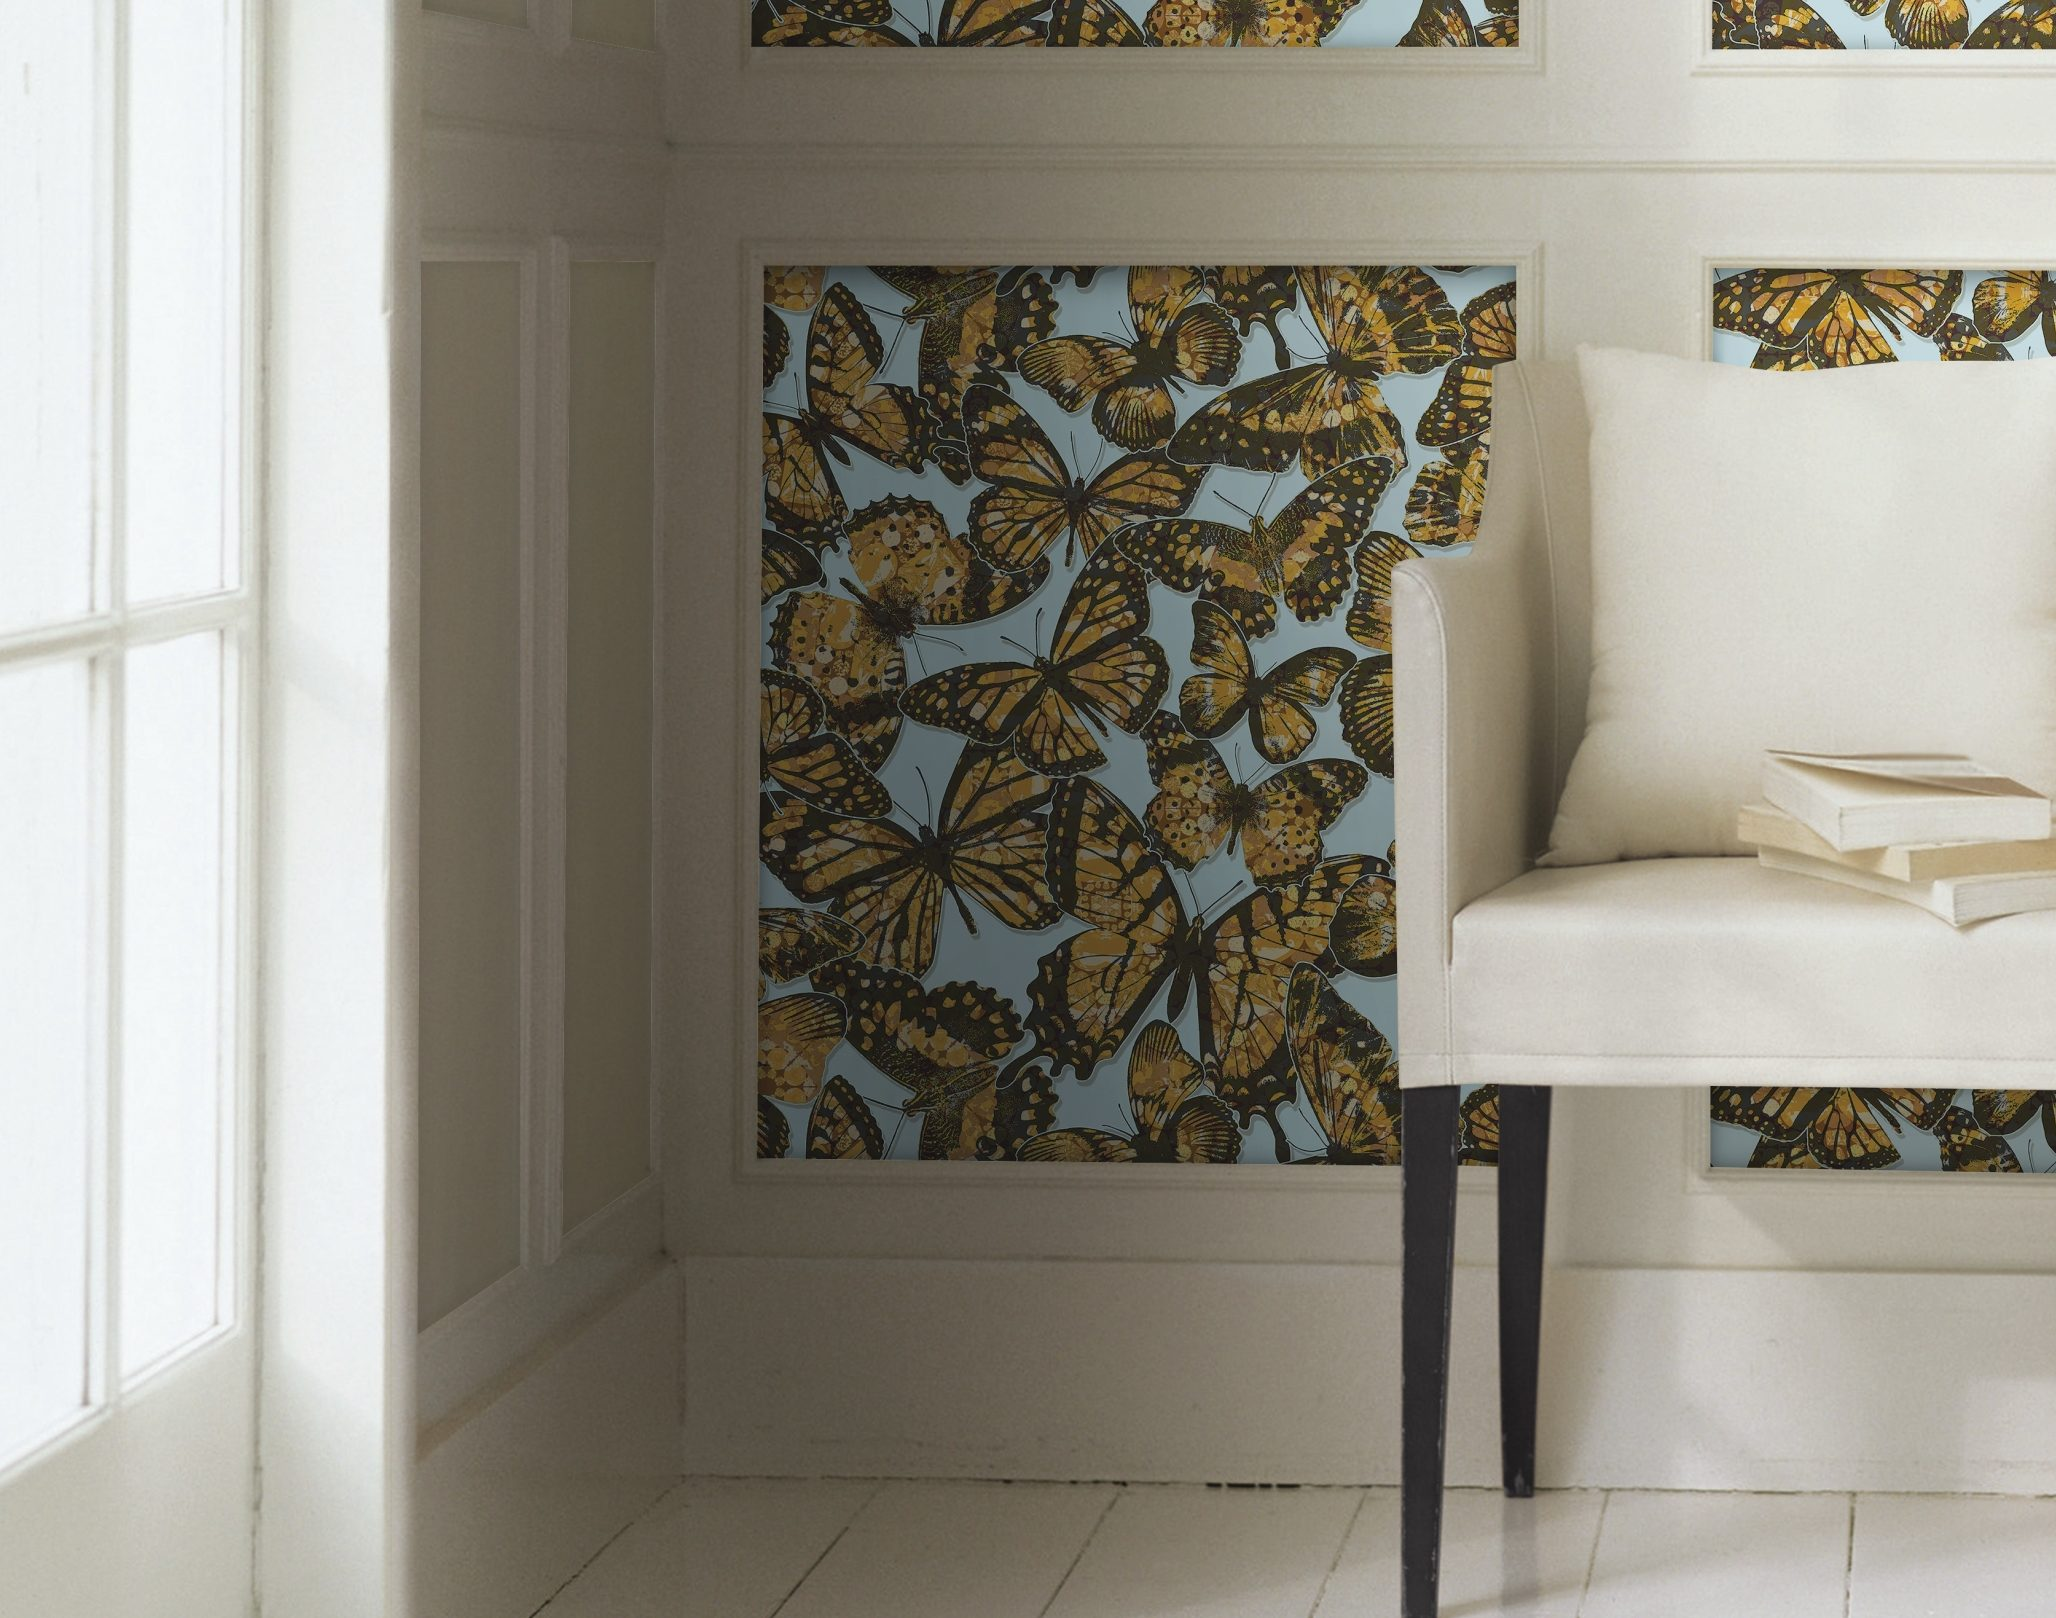 Bring some butterflies into your home in 2017 – even on wallpaper. The Jeweled Monarch pattern is from the Urban Chic collection from York Wallcoverings, yorkwall.com. (Photo courtesy York Wallcoverings)